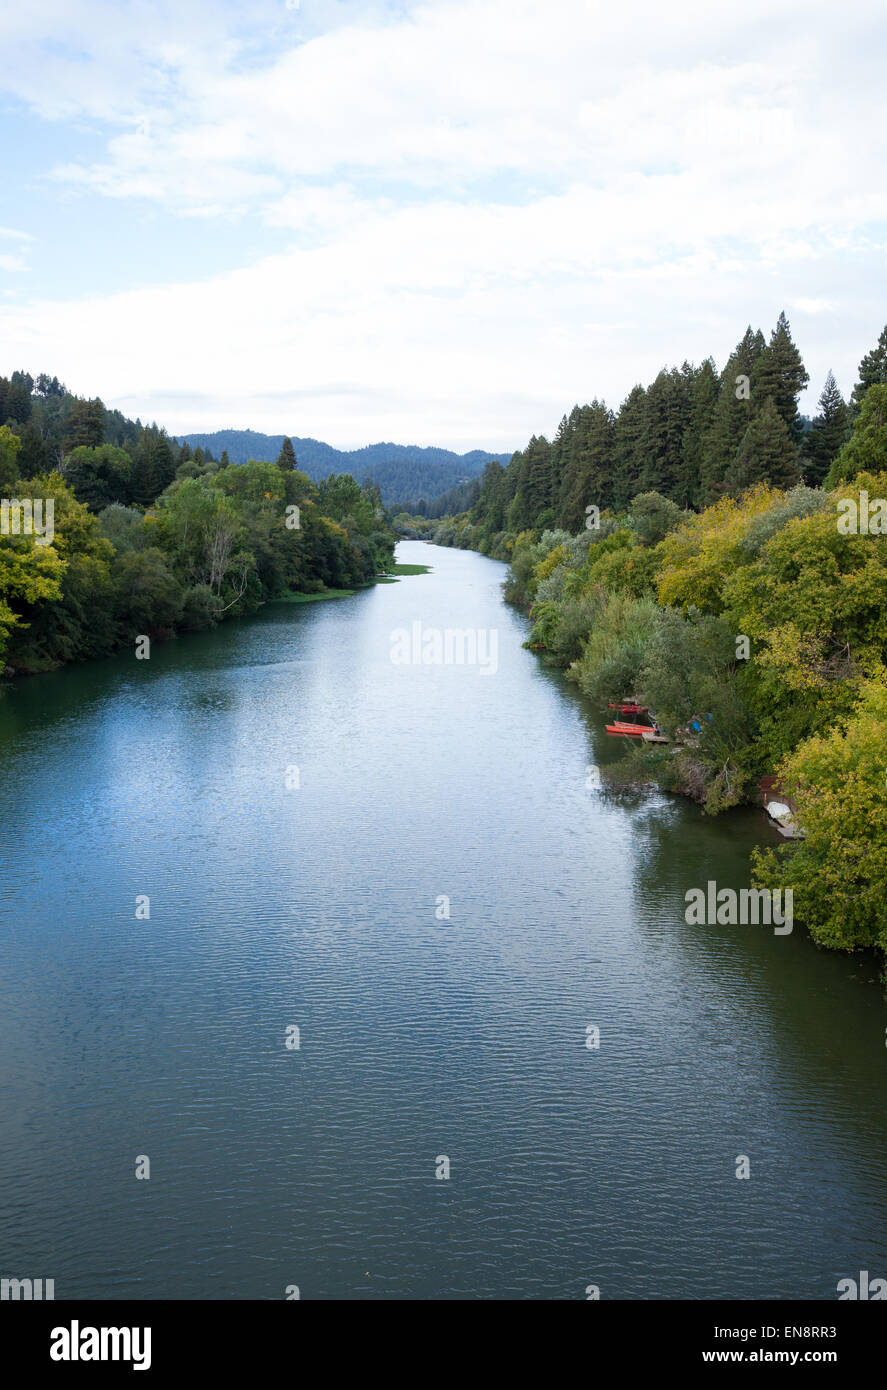 A view of the Russian River near Guernville in Northern California. - Stock Image